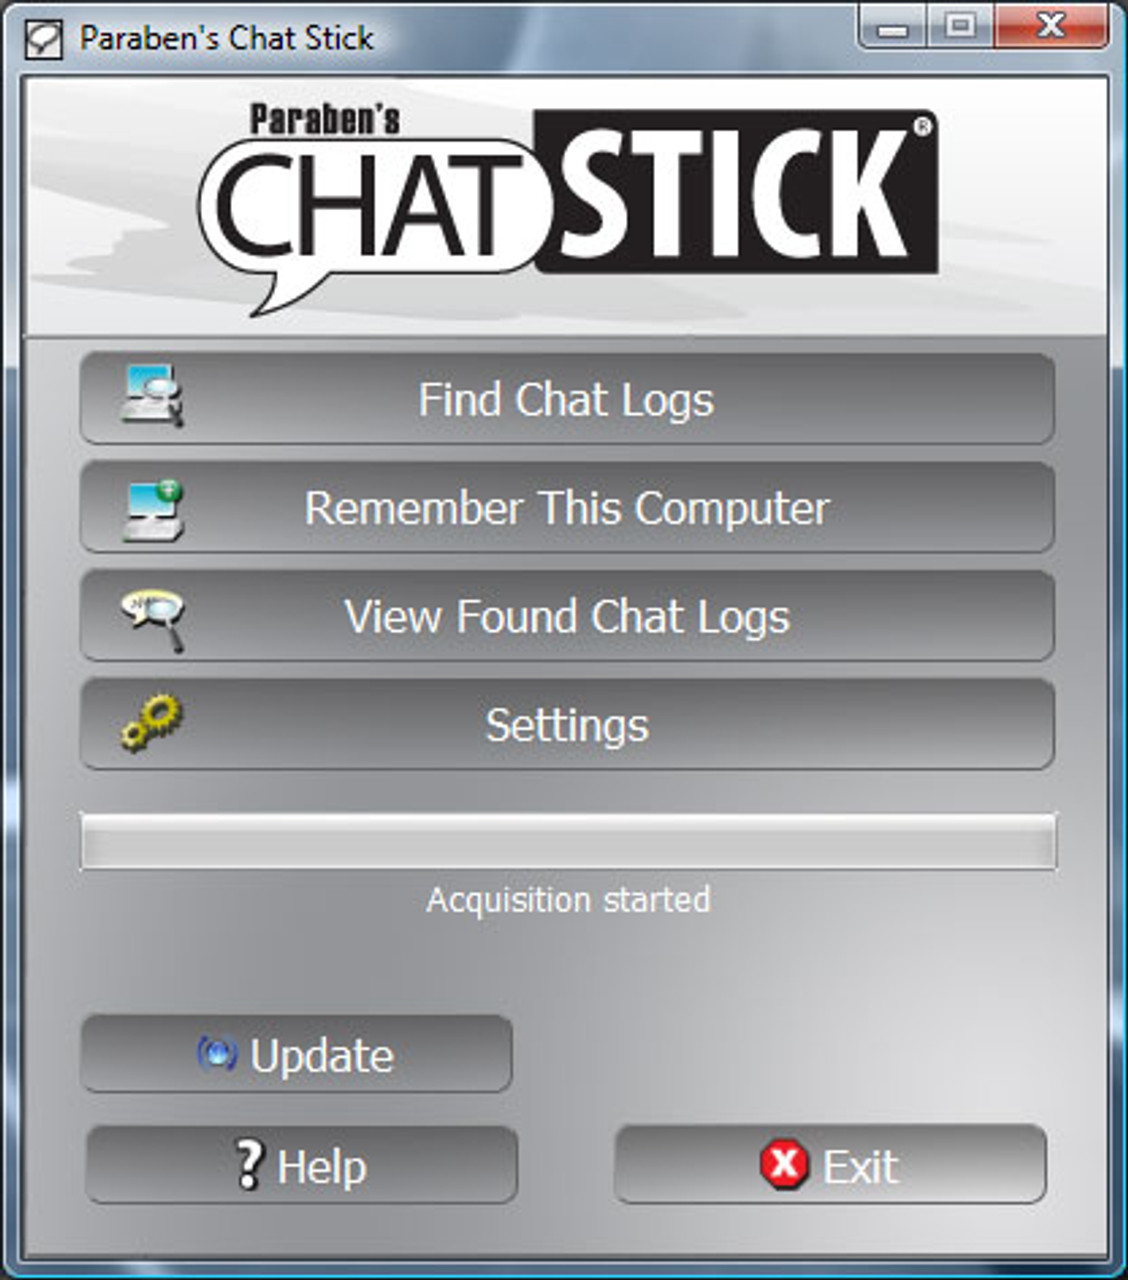 Paraben Chat Stick Online Monitoring for PCs